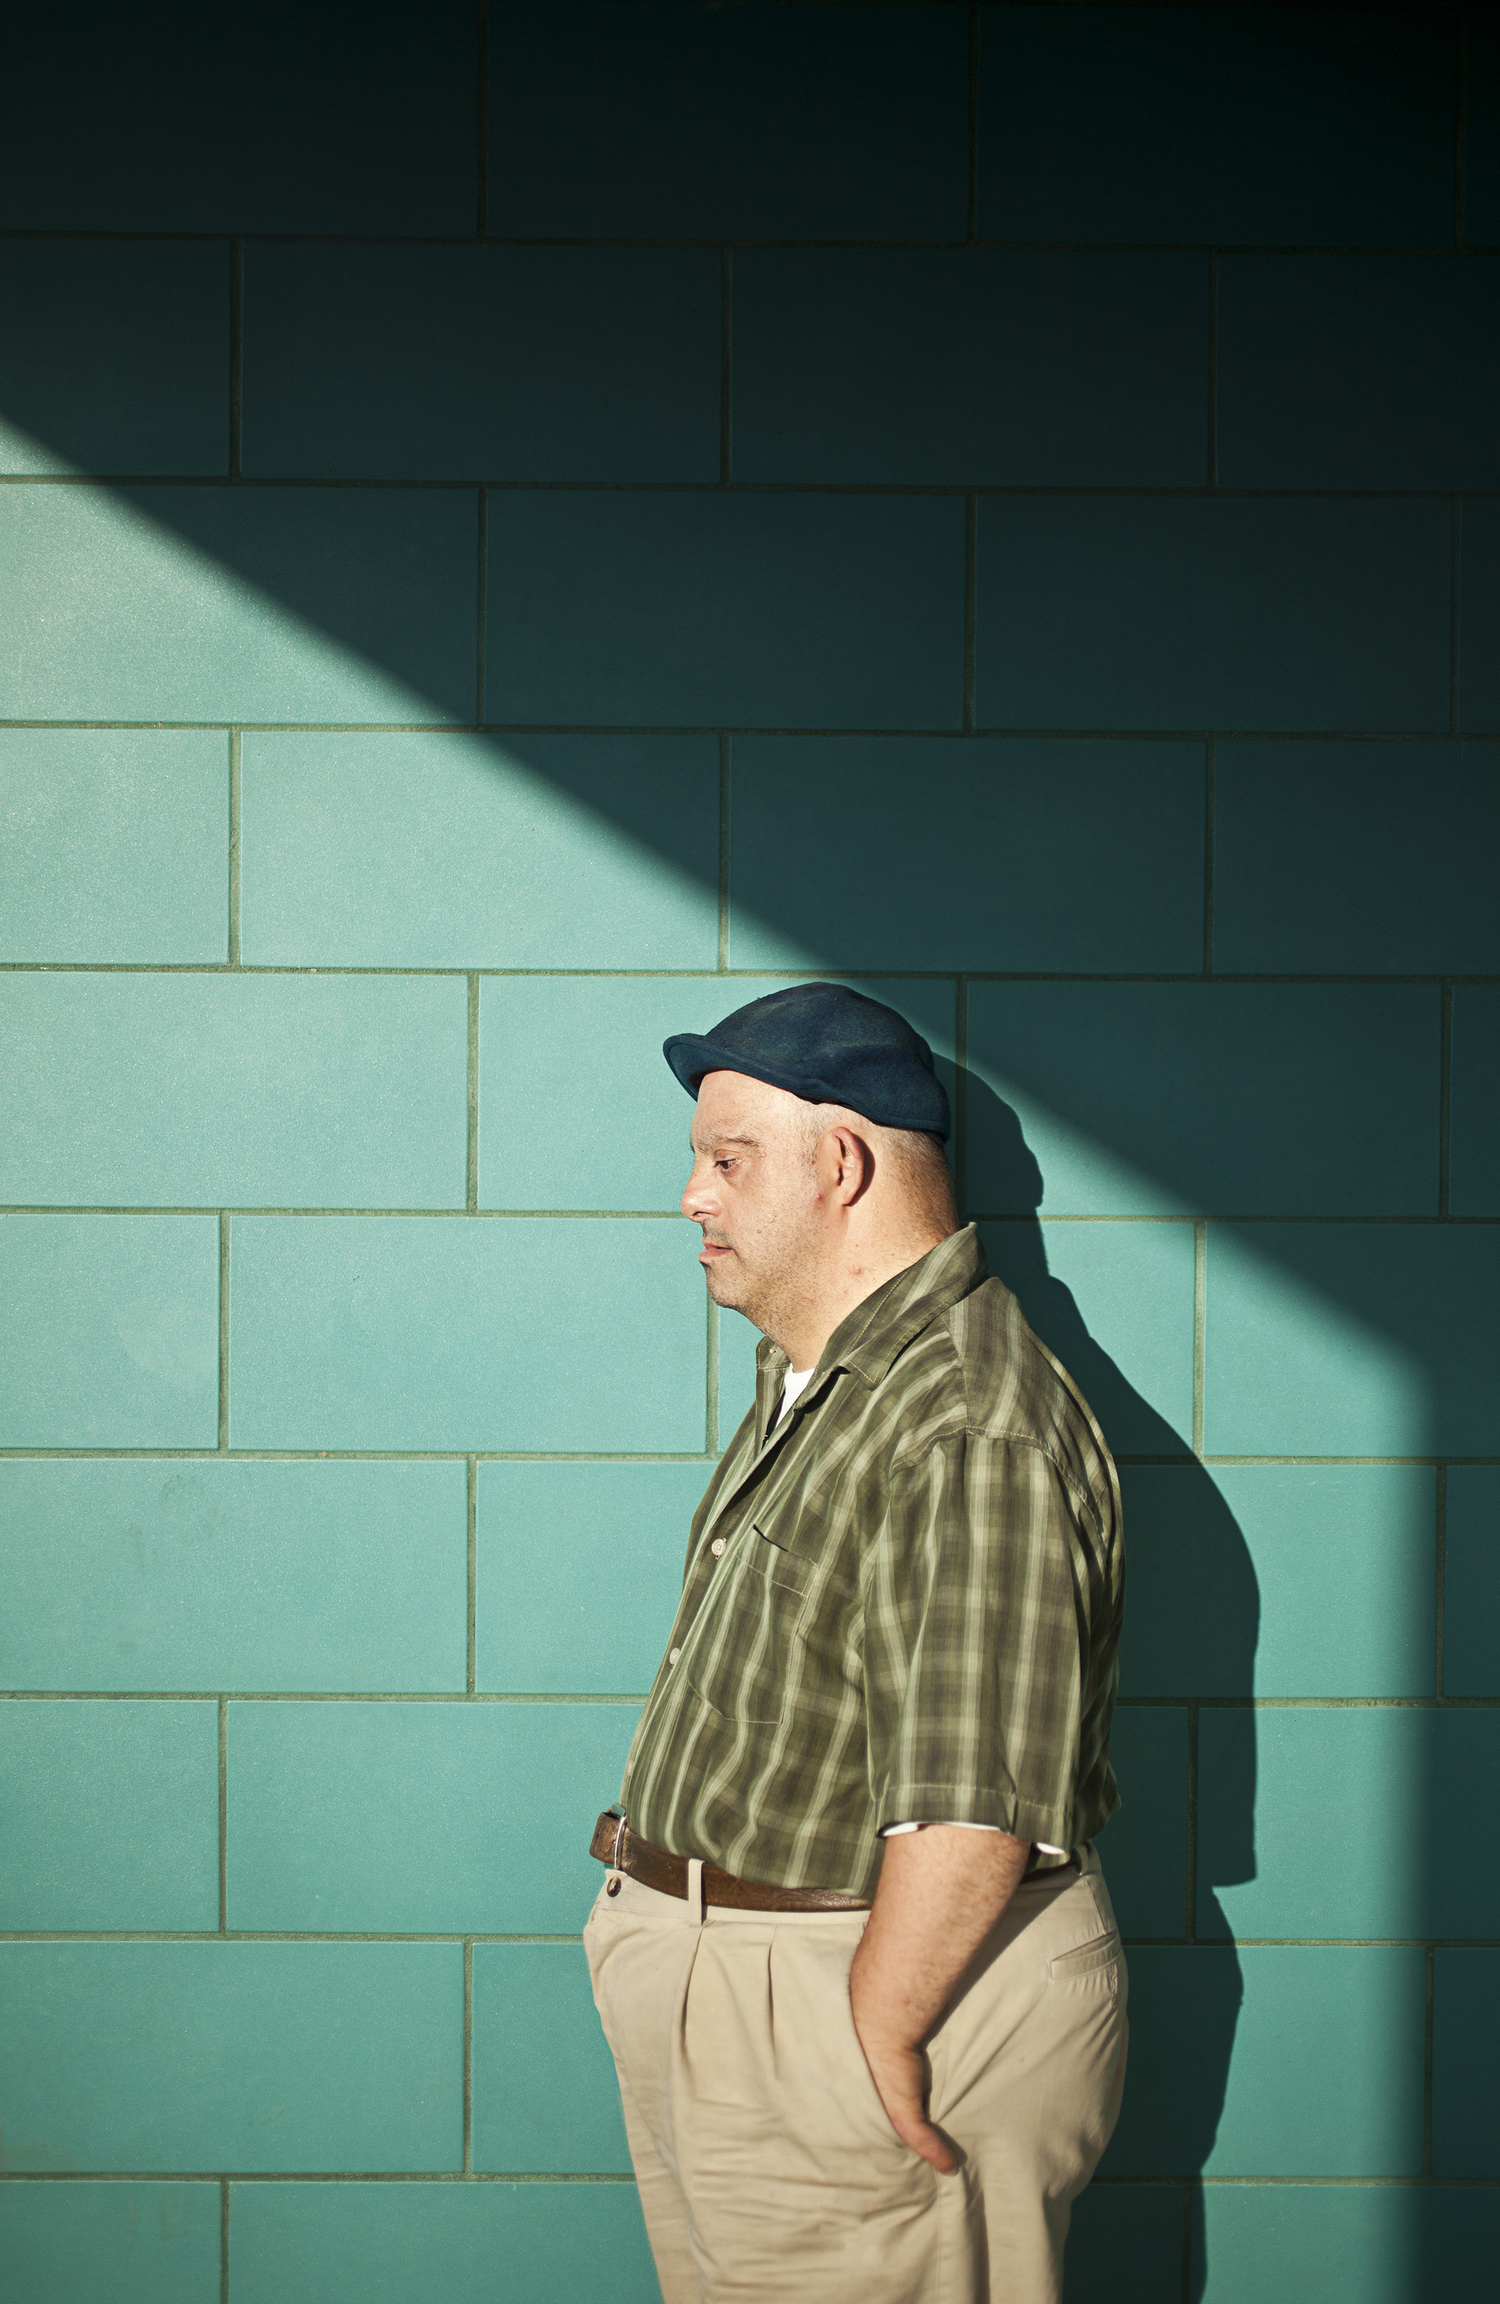 Imagery from a personal project with Afshin, photographer Kat Kaye's uncle.